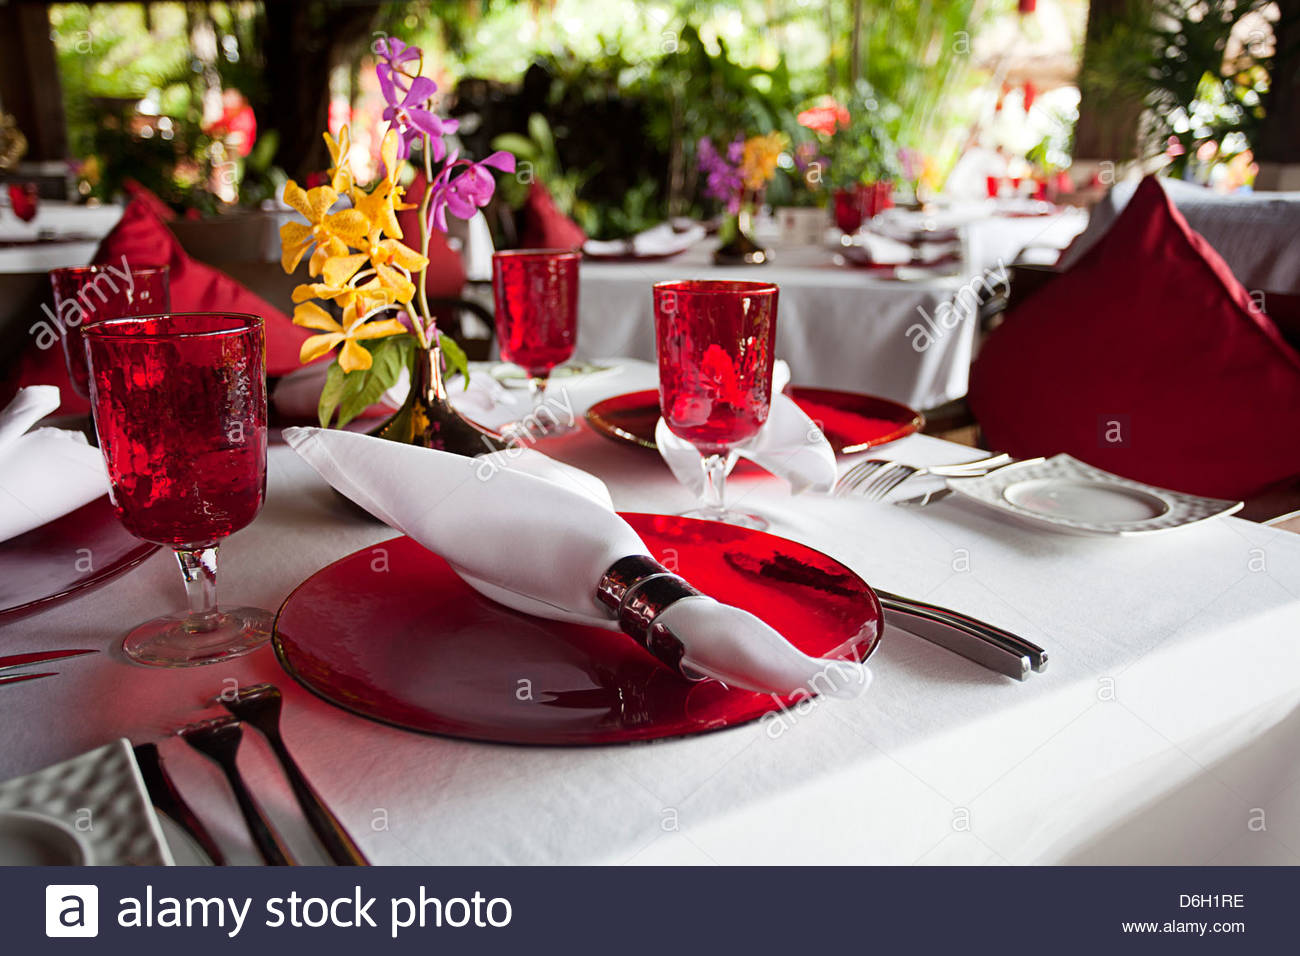 Set tables in restaurant - Stock Image